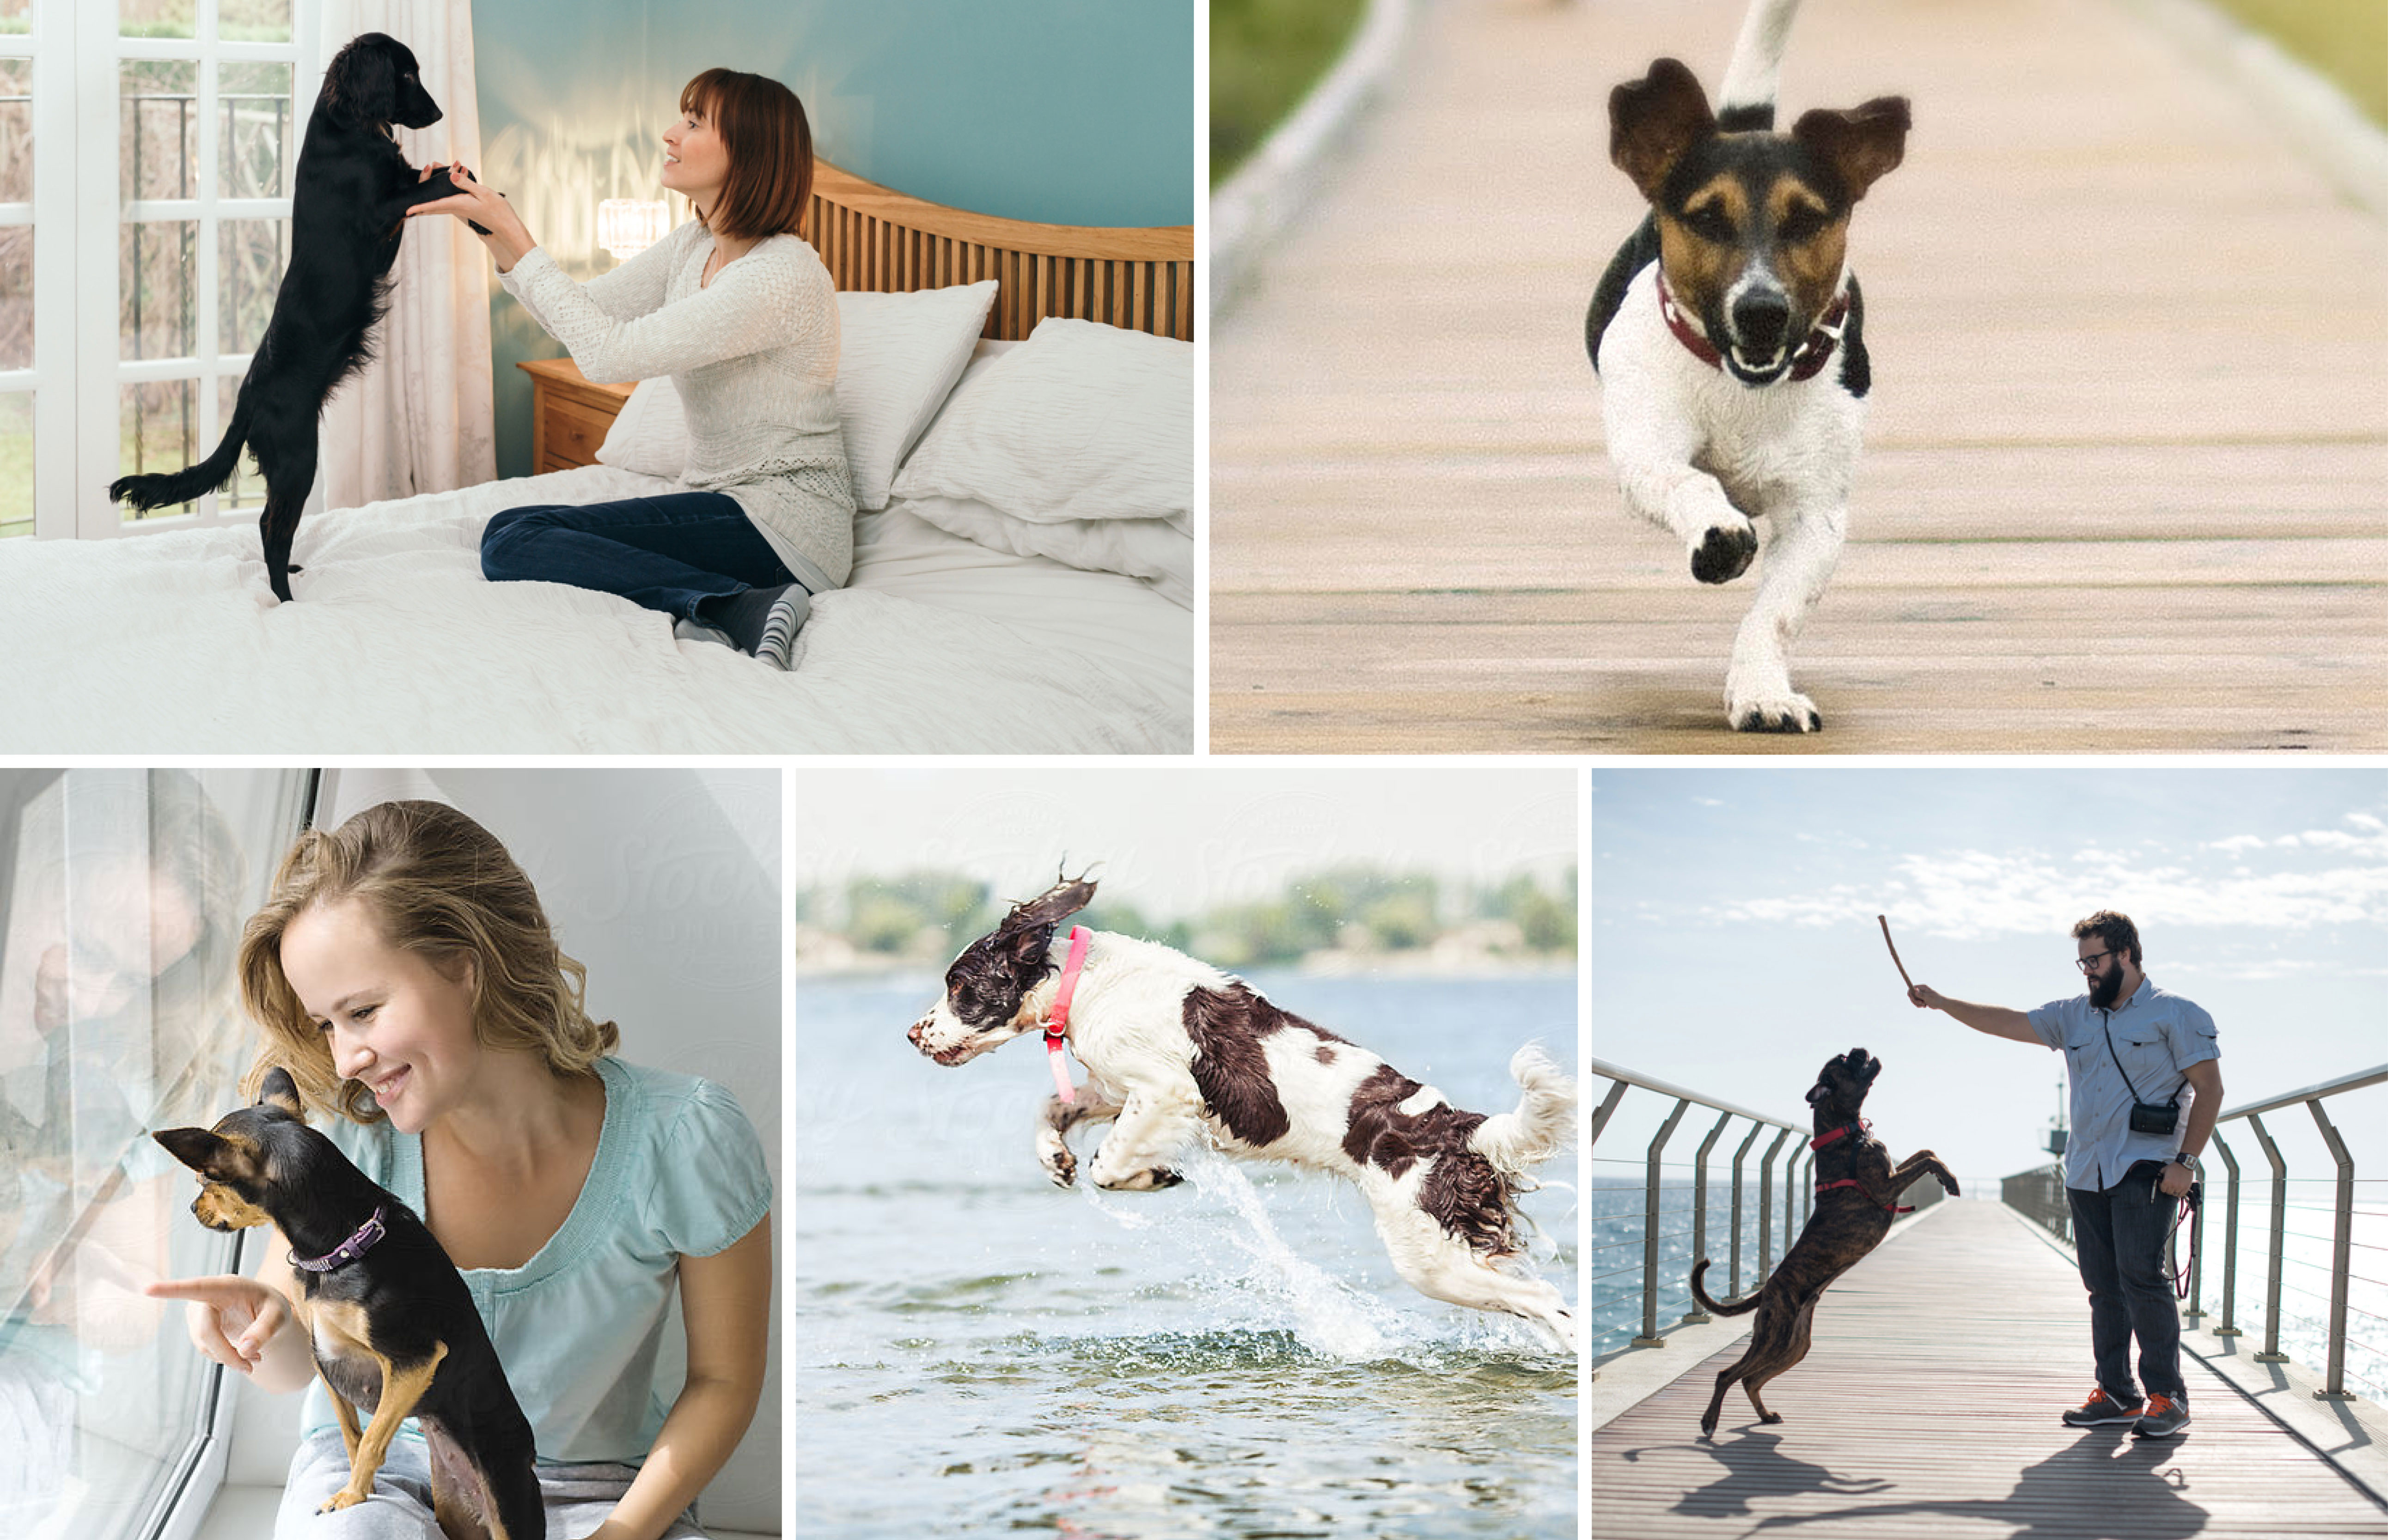 photos of dogs in action